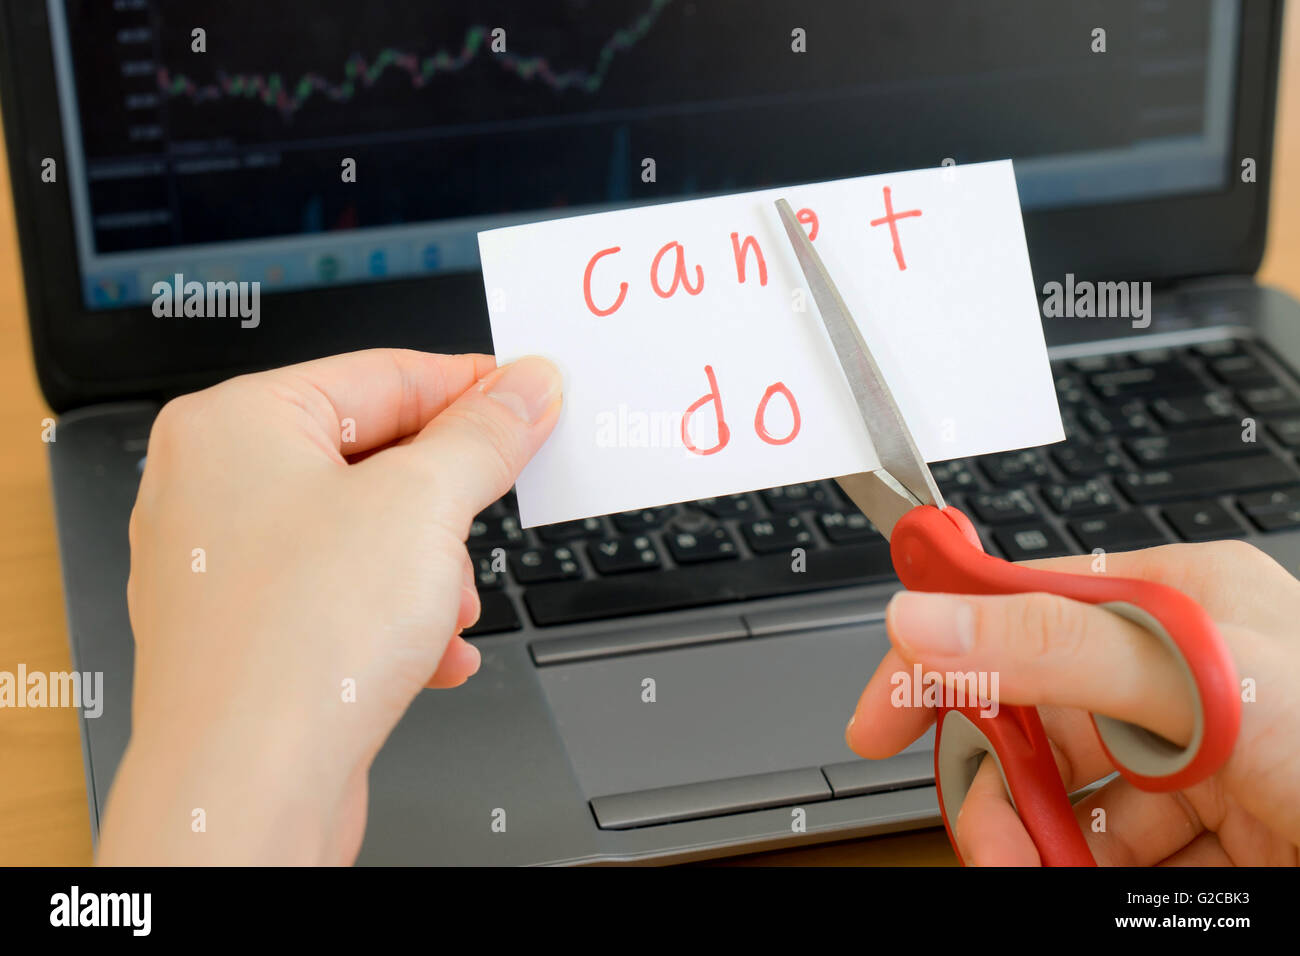 holds card with text can't do on computer - Stock Image